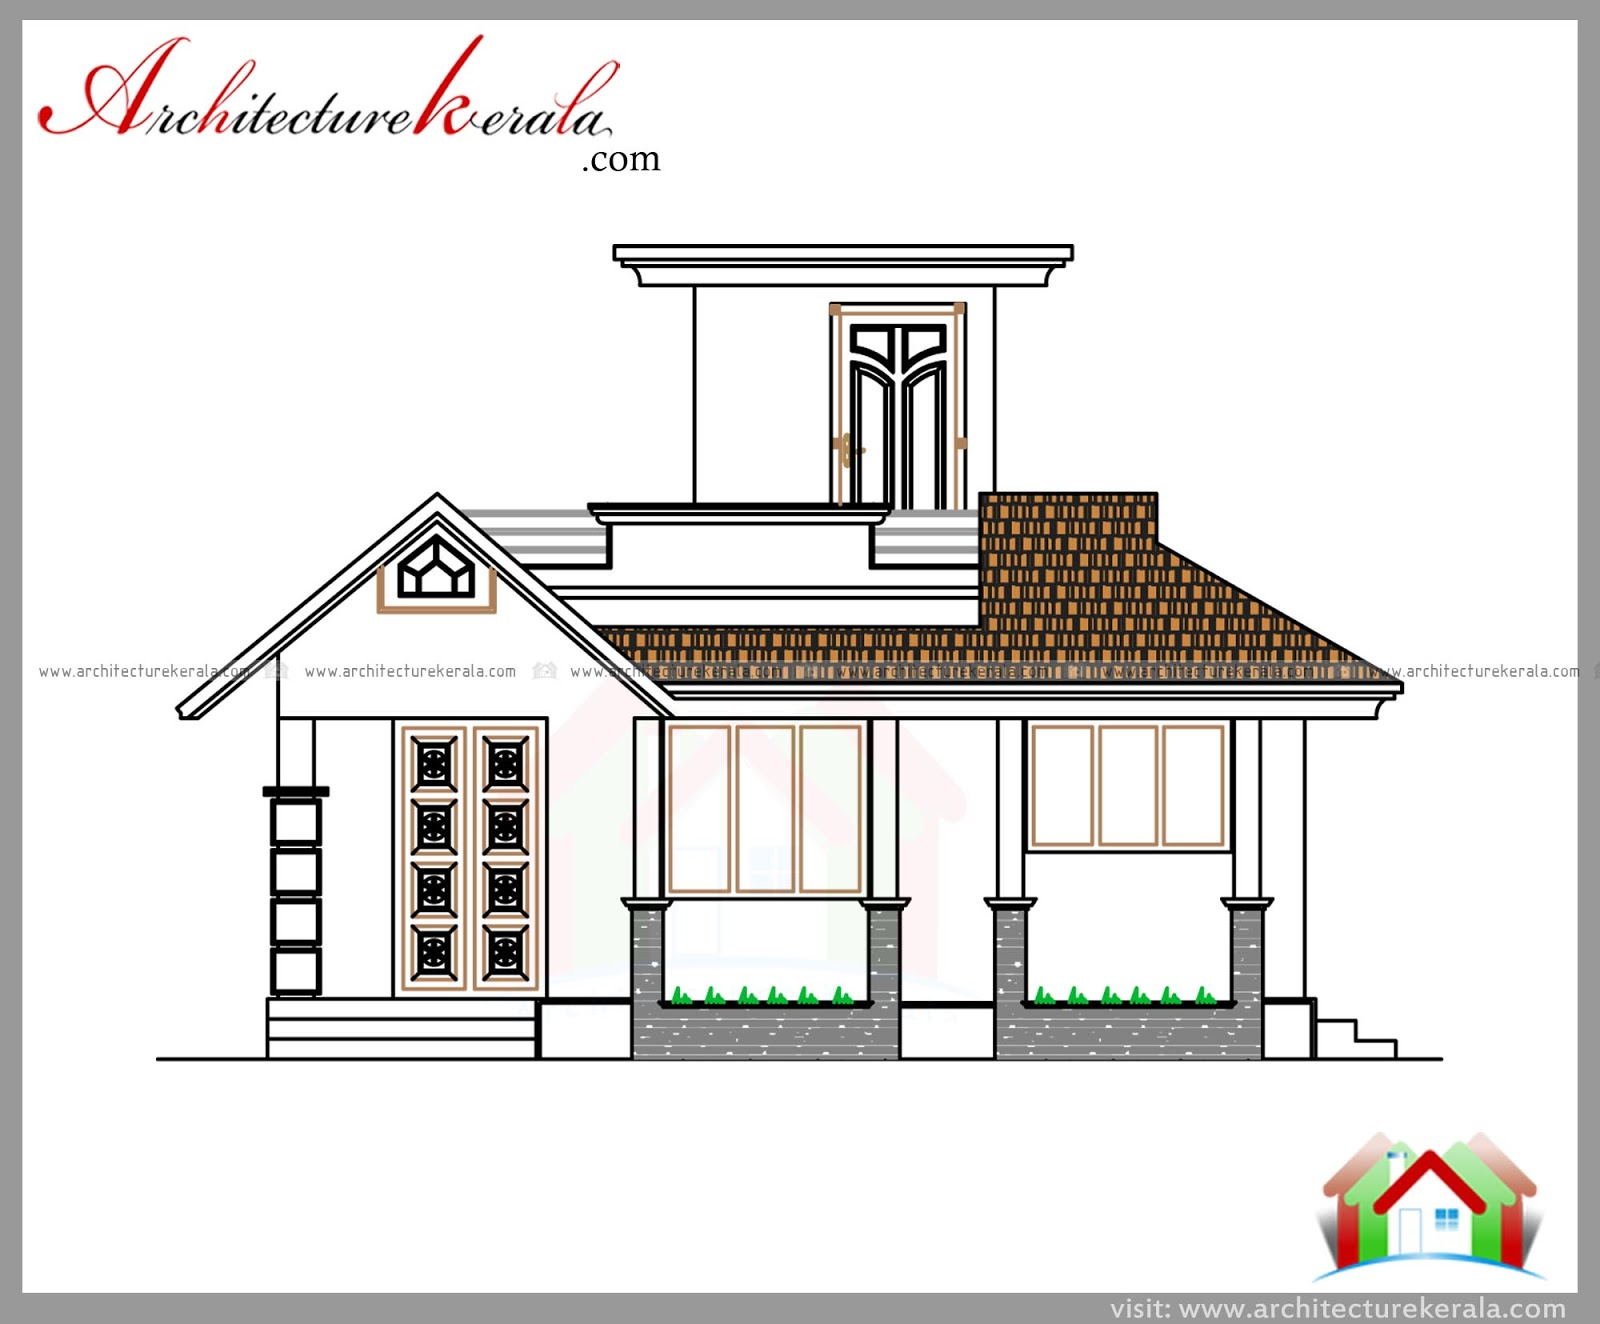 2 bedroom house estimate cost under 15 lakhs Estimate cost of house